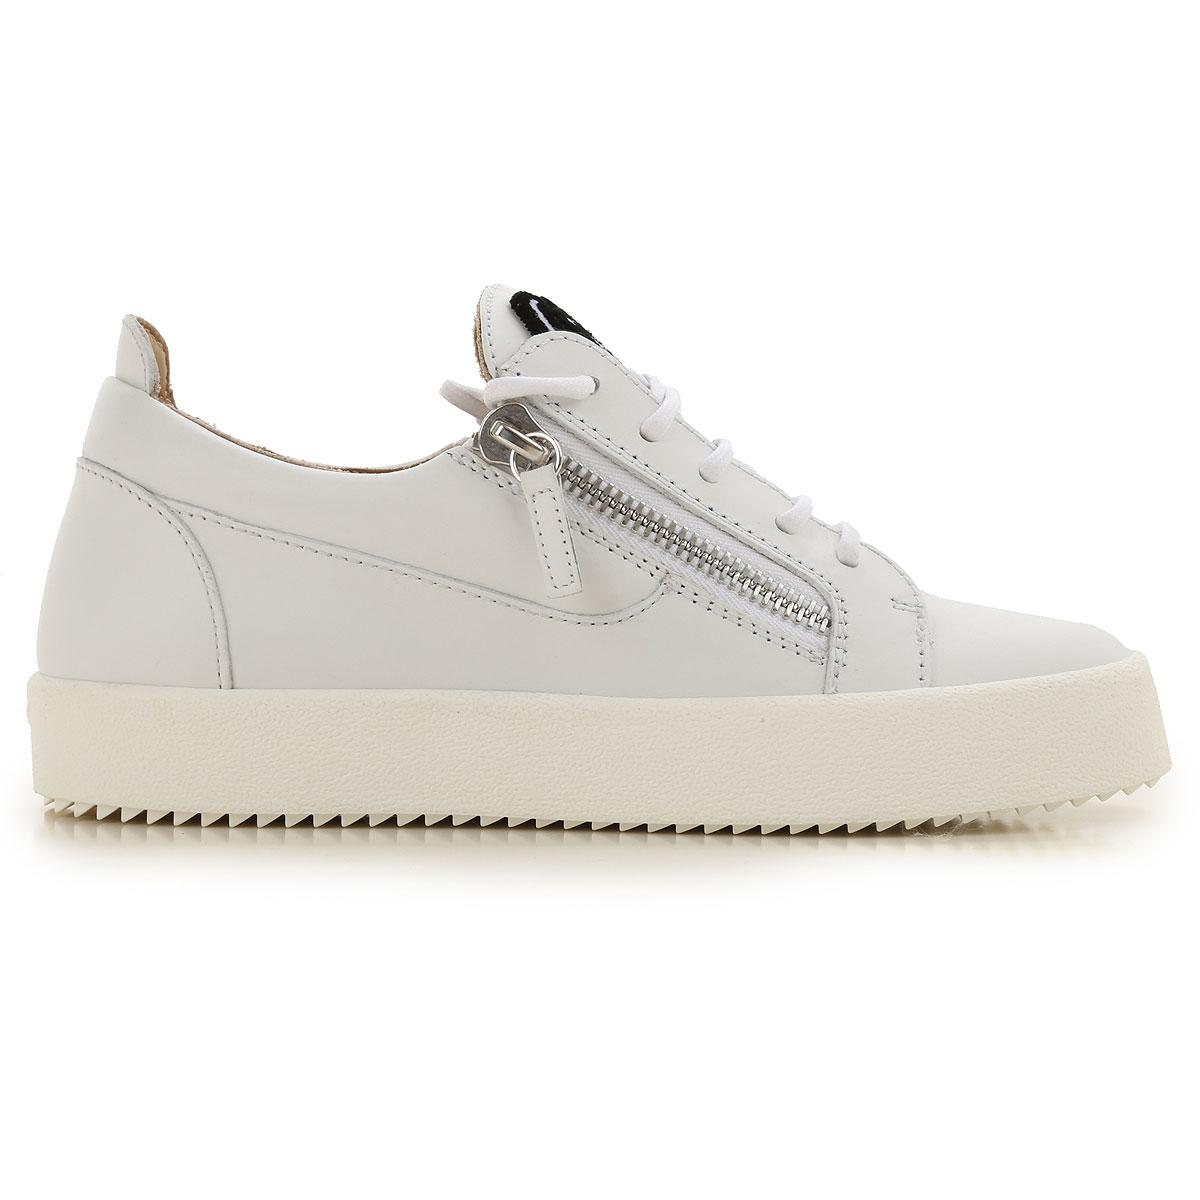 f382f9c6c497e Giuseppe Zanotti - White Sneakers For Women On Sale - Lyst. View fullscreen